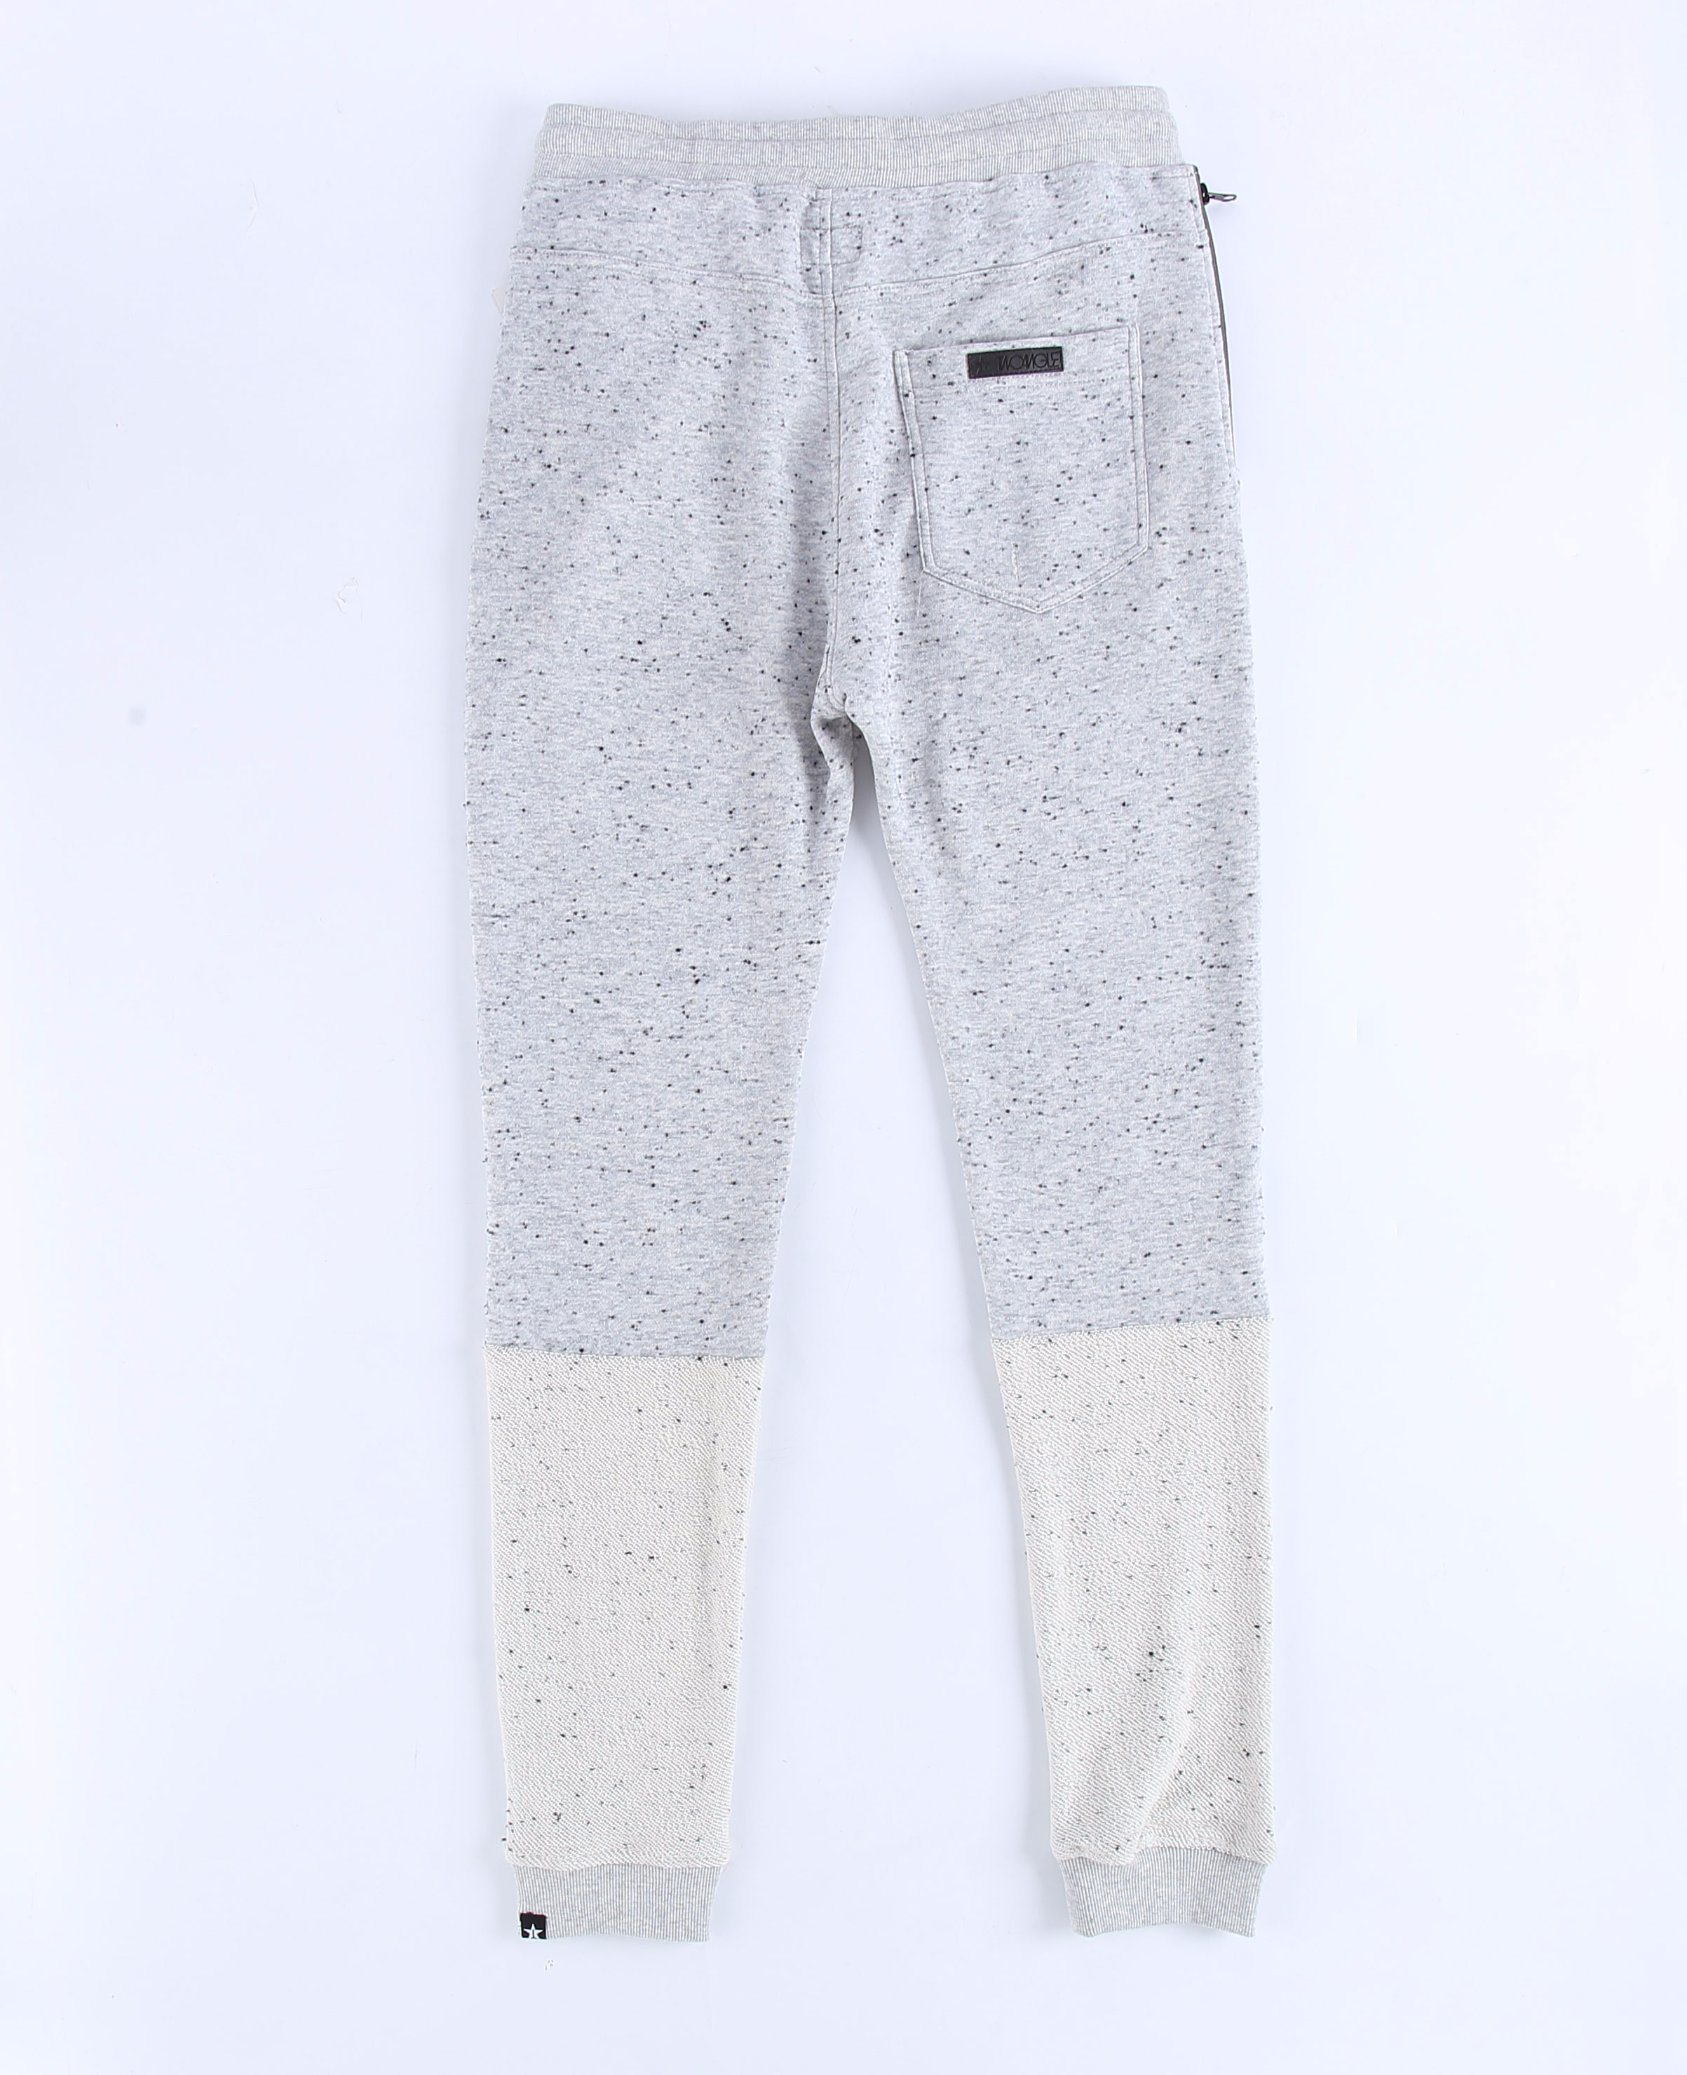 100% Sparkle Cotton Terry Men′s Sport Pants / Casual Pants